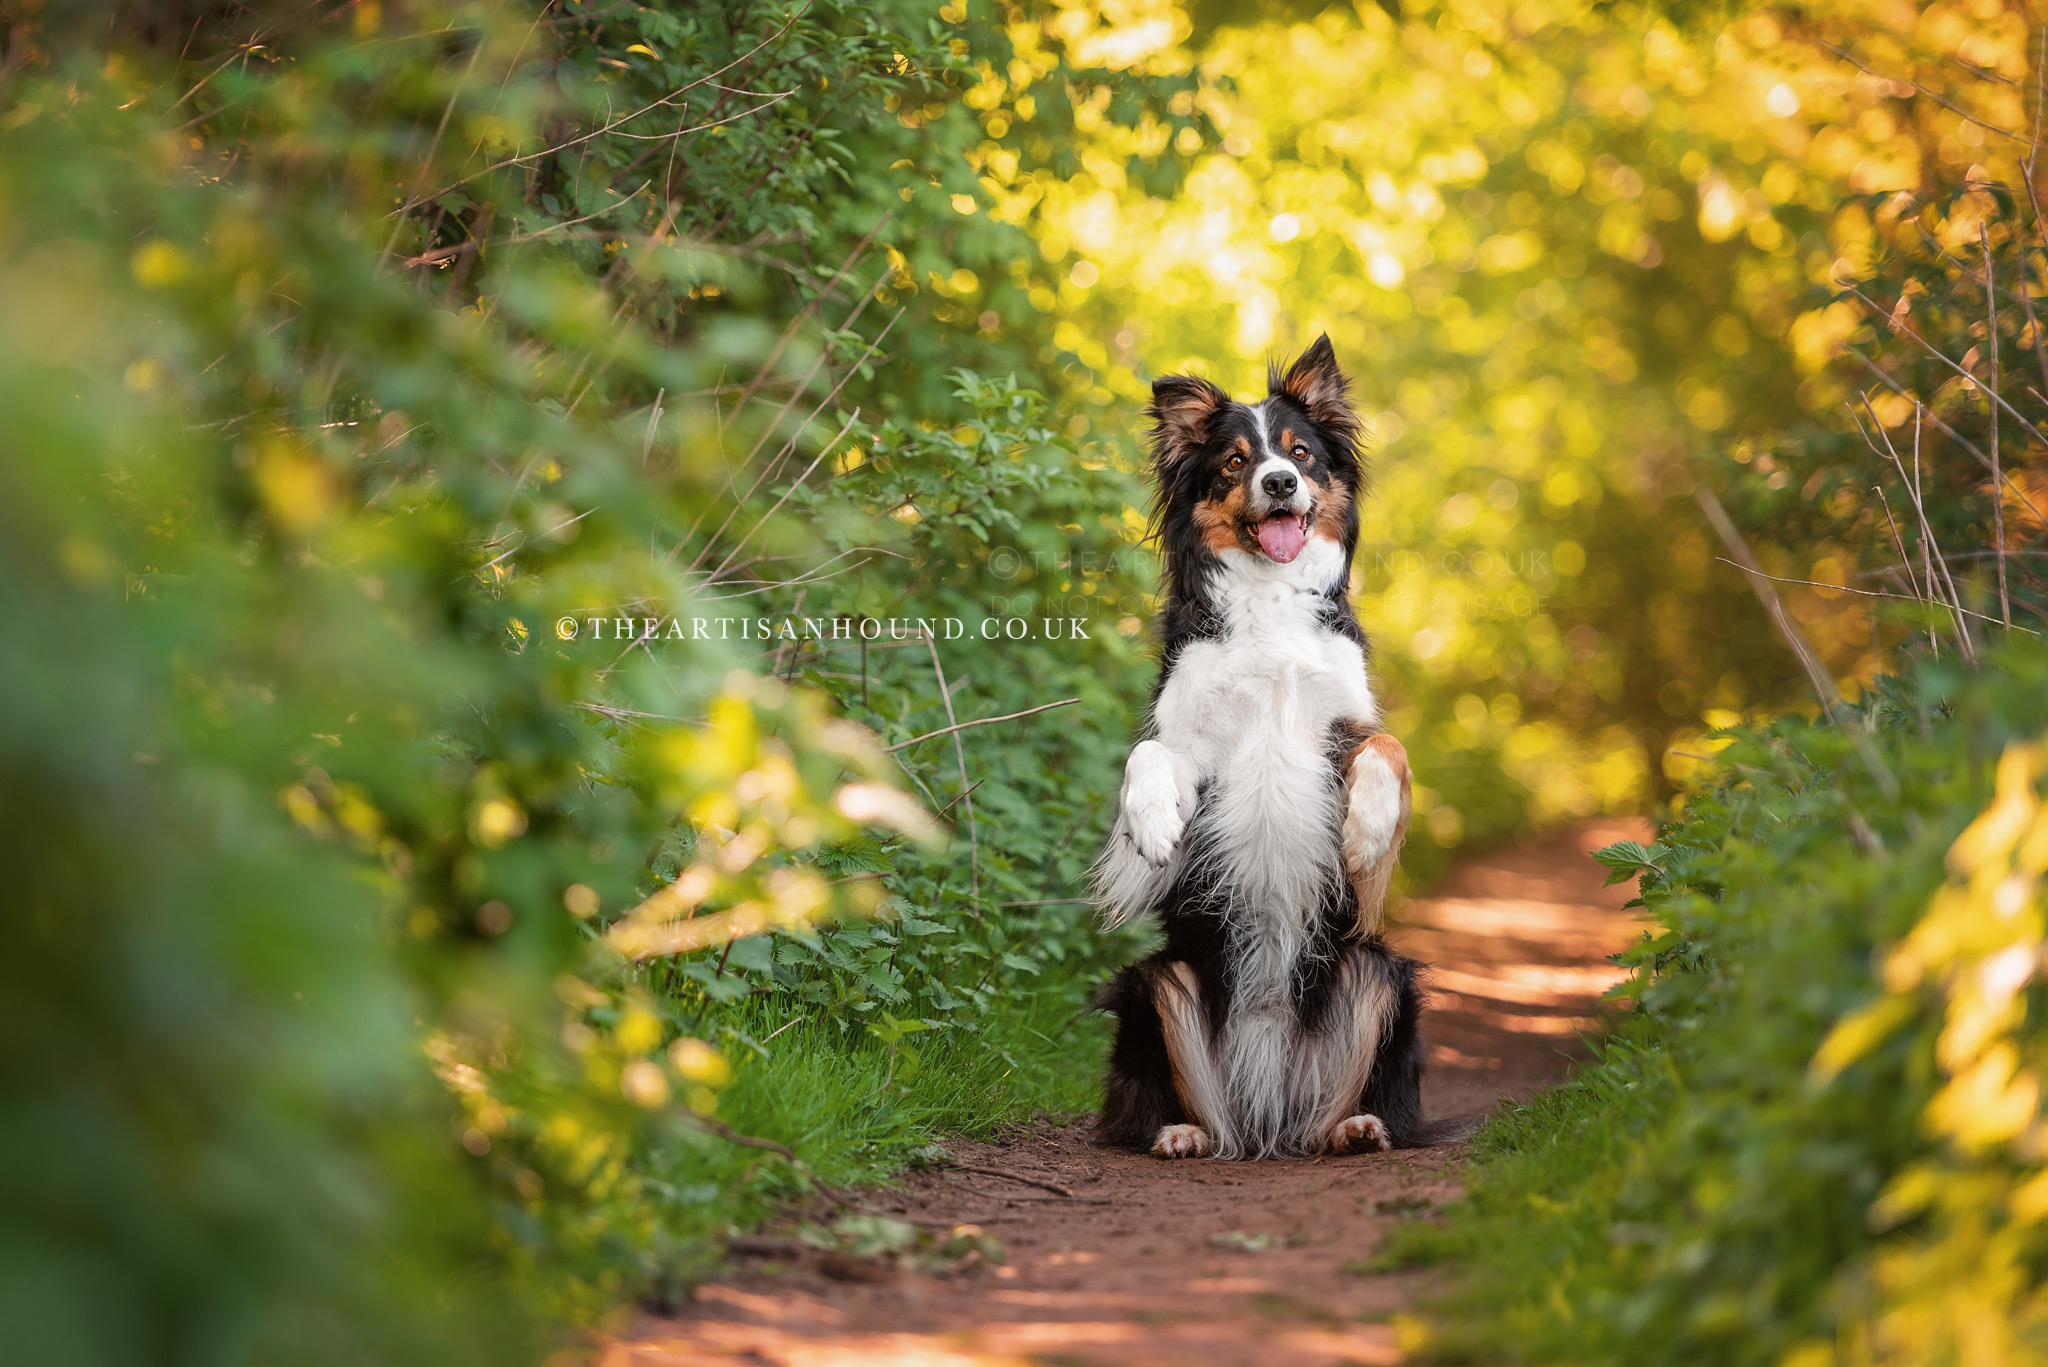 Border Collie dog sitting and begging in narrow country lane